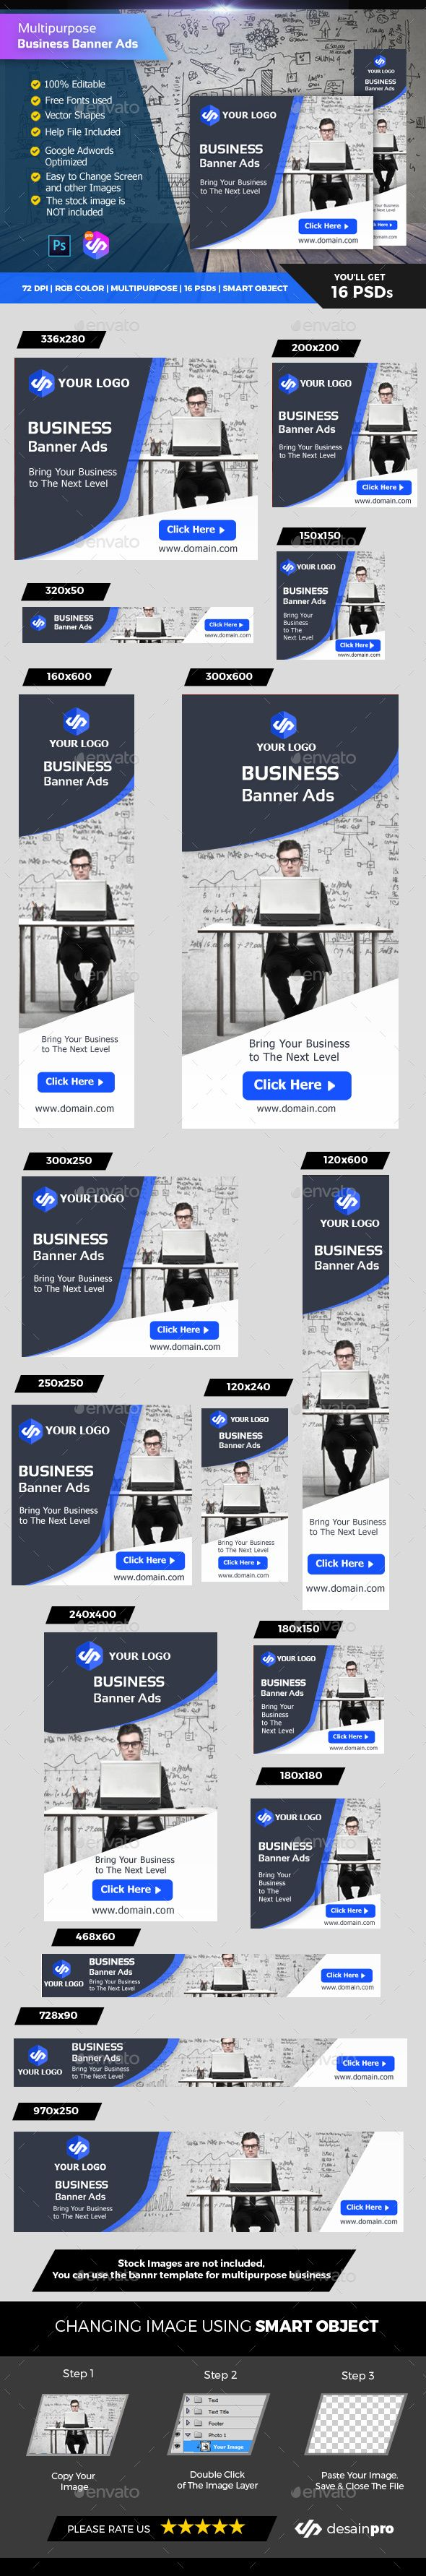 Corporate Business Banner Ads - #Banners & Ads #Web Elements Download here: https://graphicriver.net/item/corporate-business-banner-ads/19622381?ref=alena994